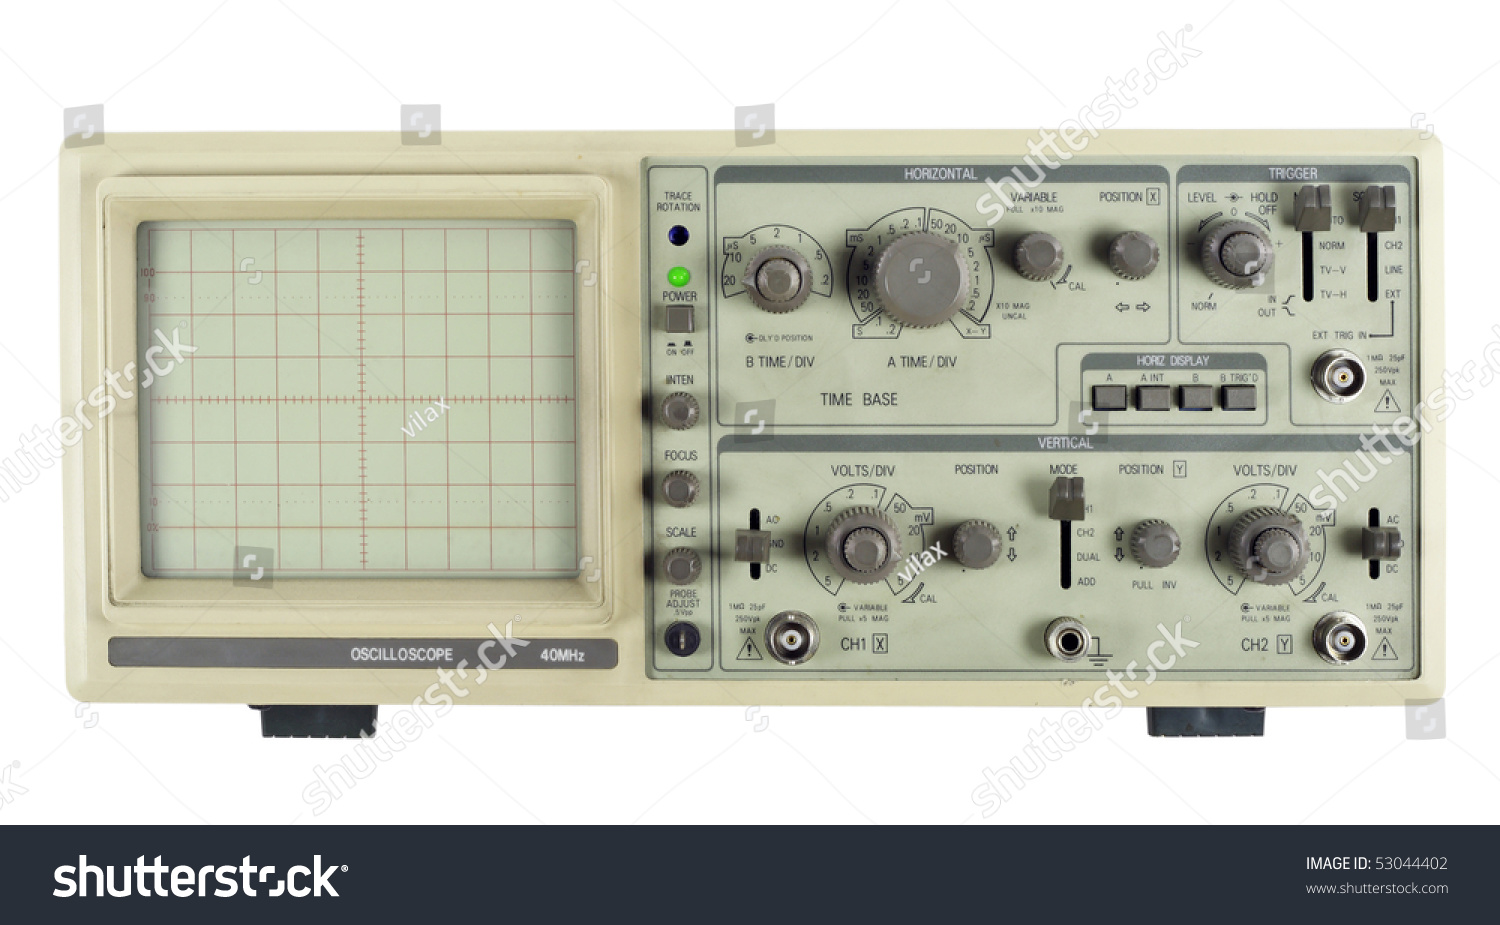 Old Oscilloscope Screen : The old analogue measuring device oscilloscope isolated